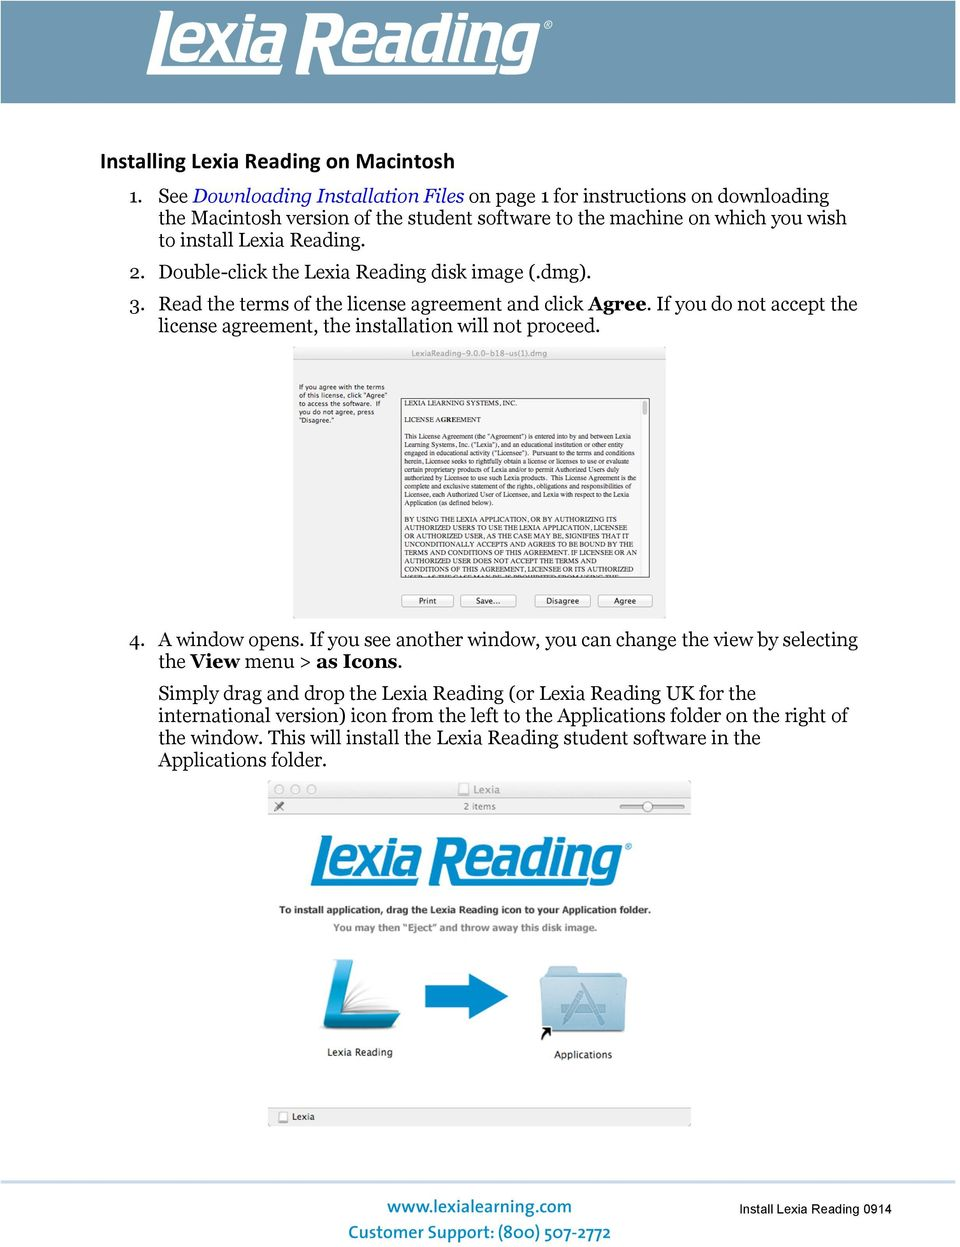 Double-click the Lexia Reading disk image (.dmg). 3. Read the terms of the license agreement and click Agree. If you do not accept the license agreement, the installation will not proceed. 4.